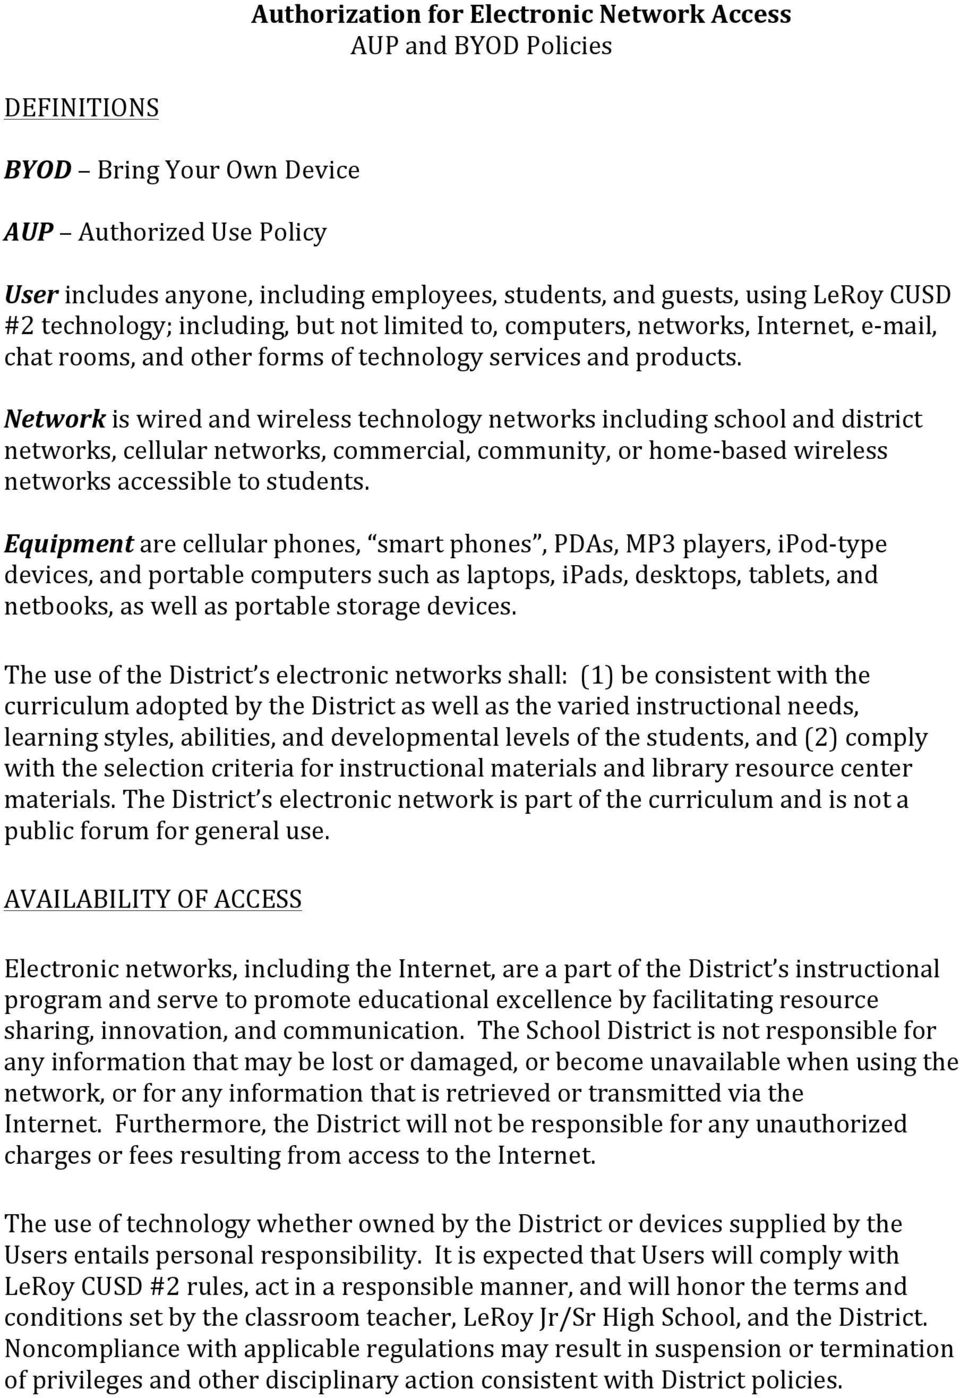 Network is wired and wireless technology networks including school and district networks, cellular networks, commercial, community, or home- based wireless networks accessible to students.